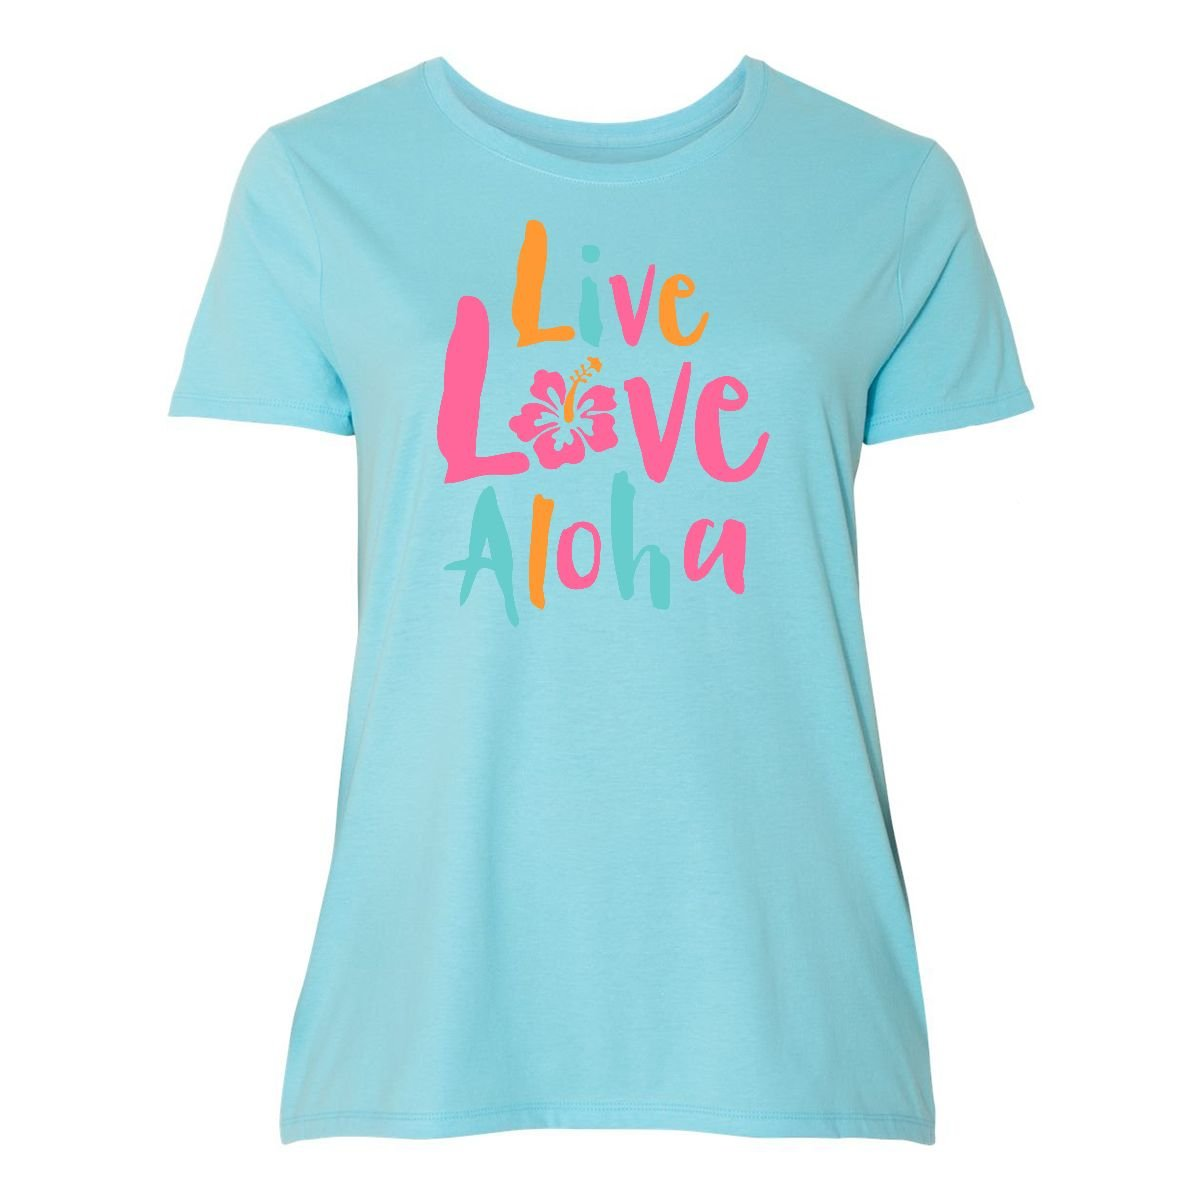 a8c7ec7bfeed Amazon.com: inktastic - Live Love Aloha 2 Women's Plus Size T-Shirt 2637d:  Clothing